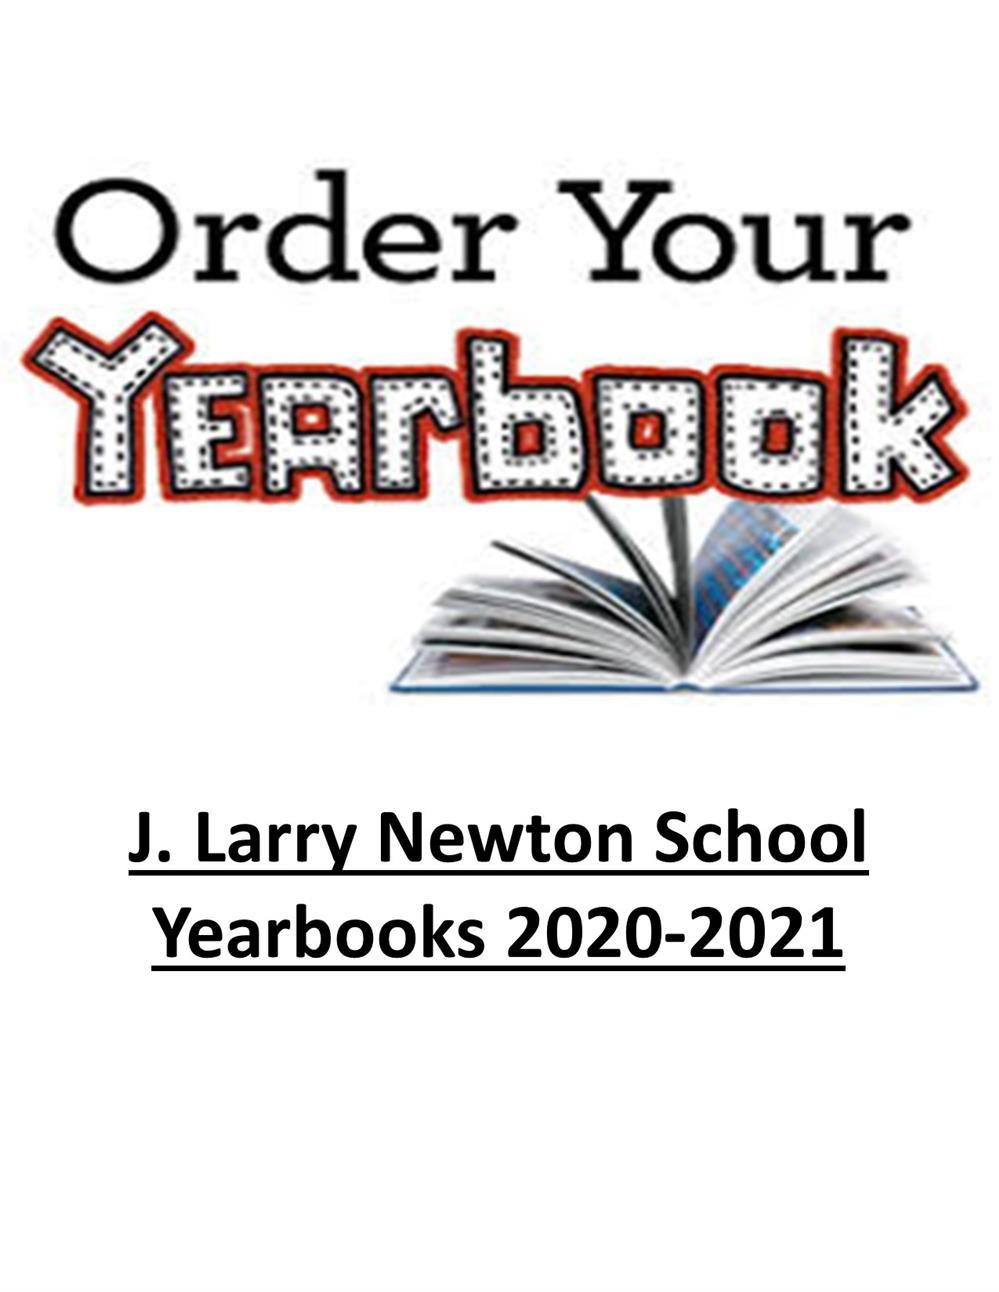 2020-2021 JLN Yearbook